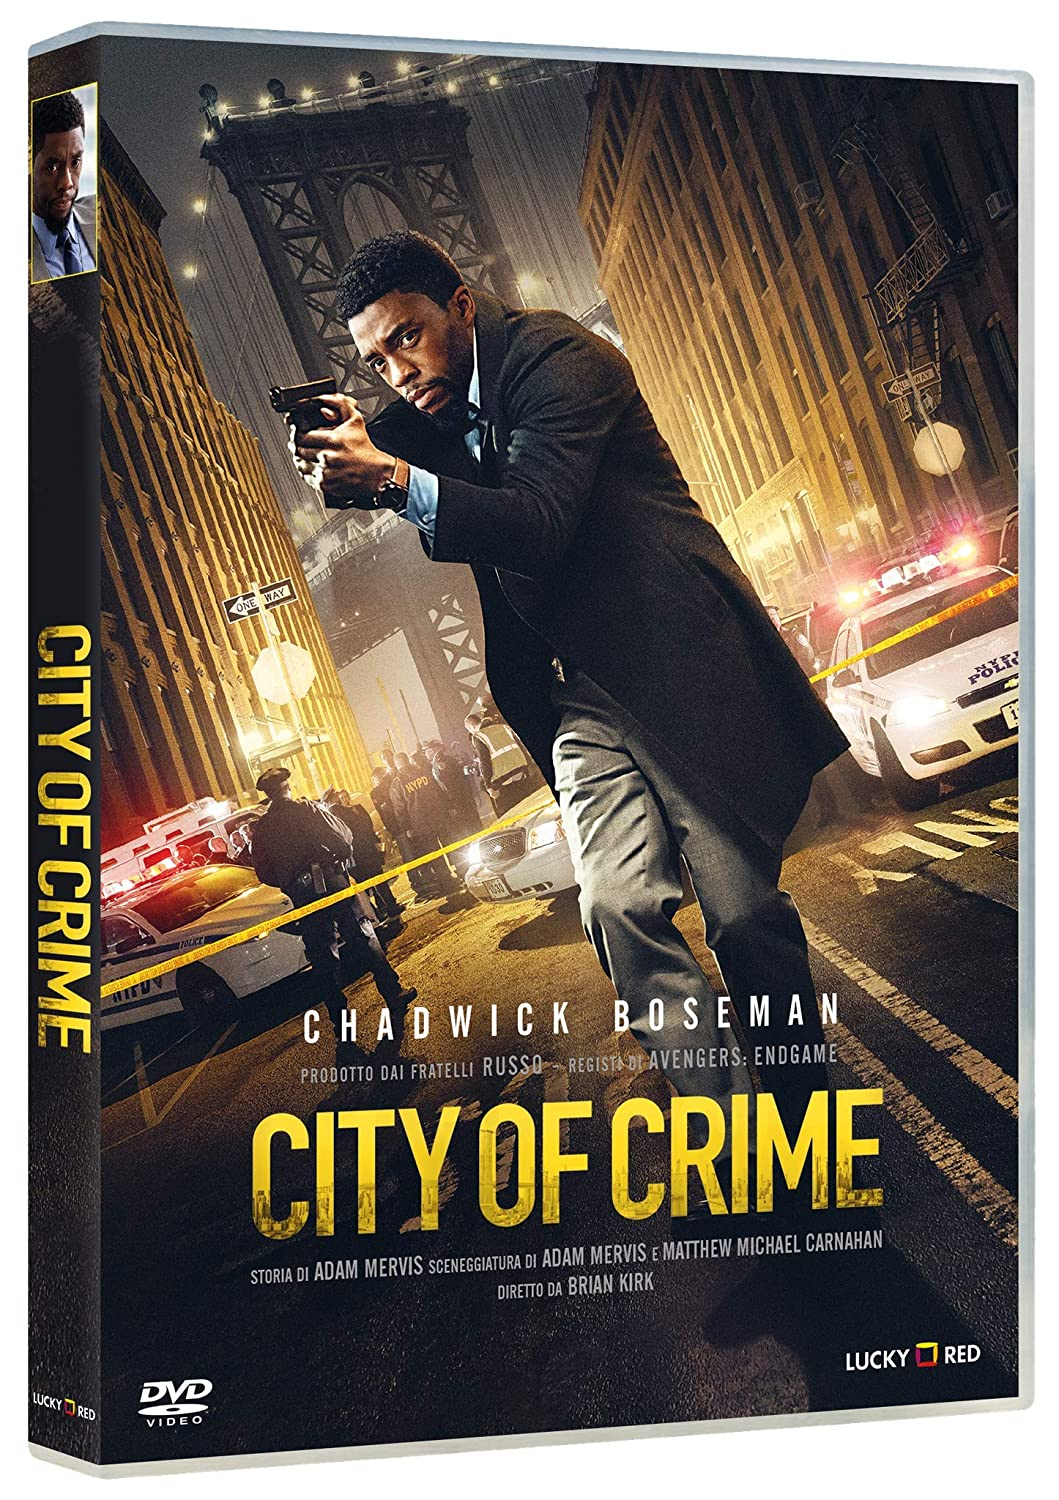 CITY OF CRIME (DVD)